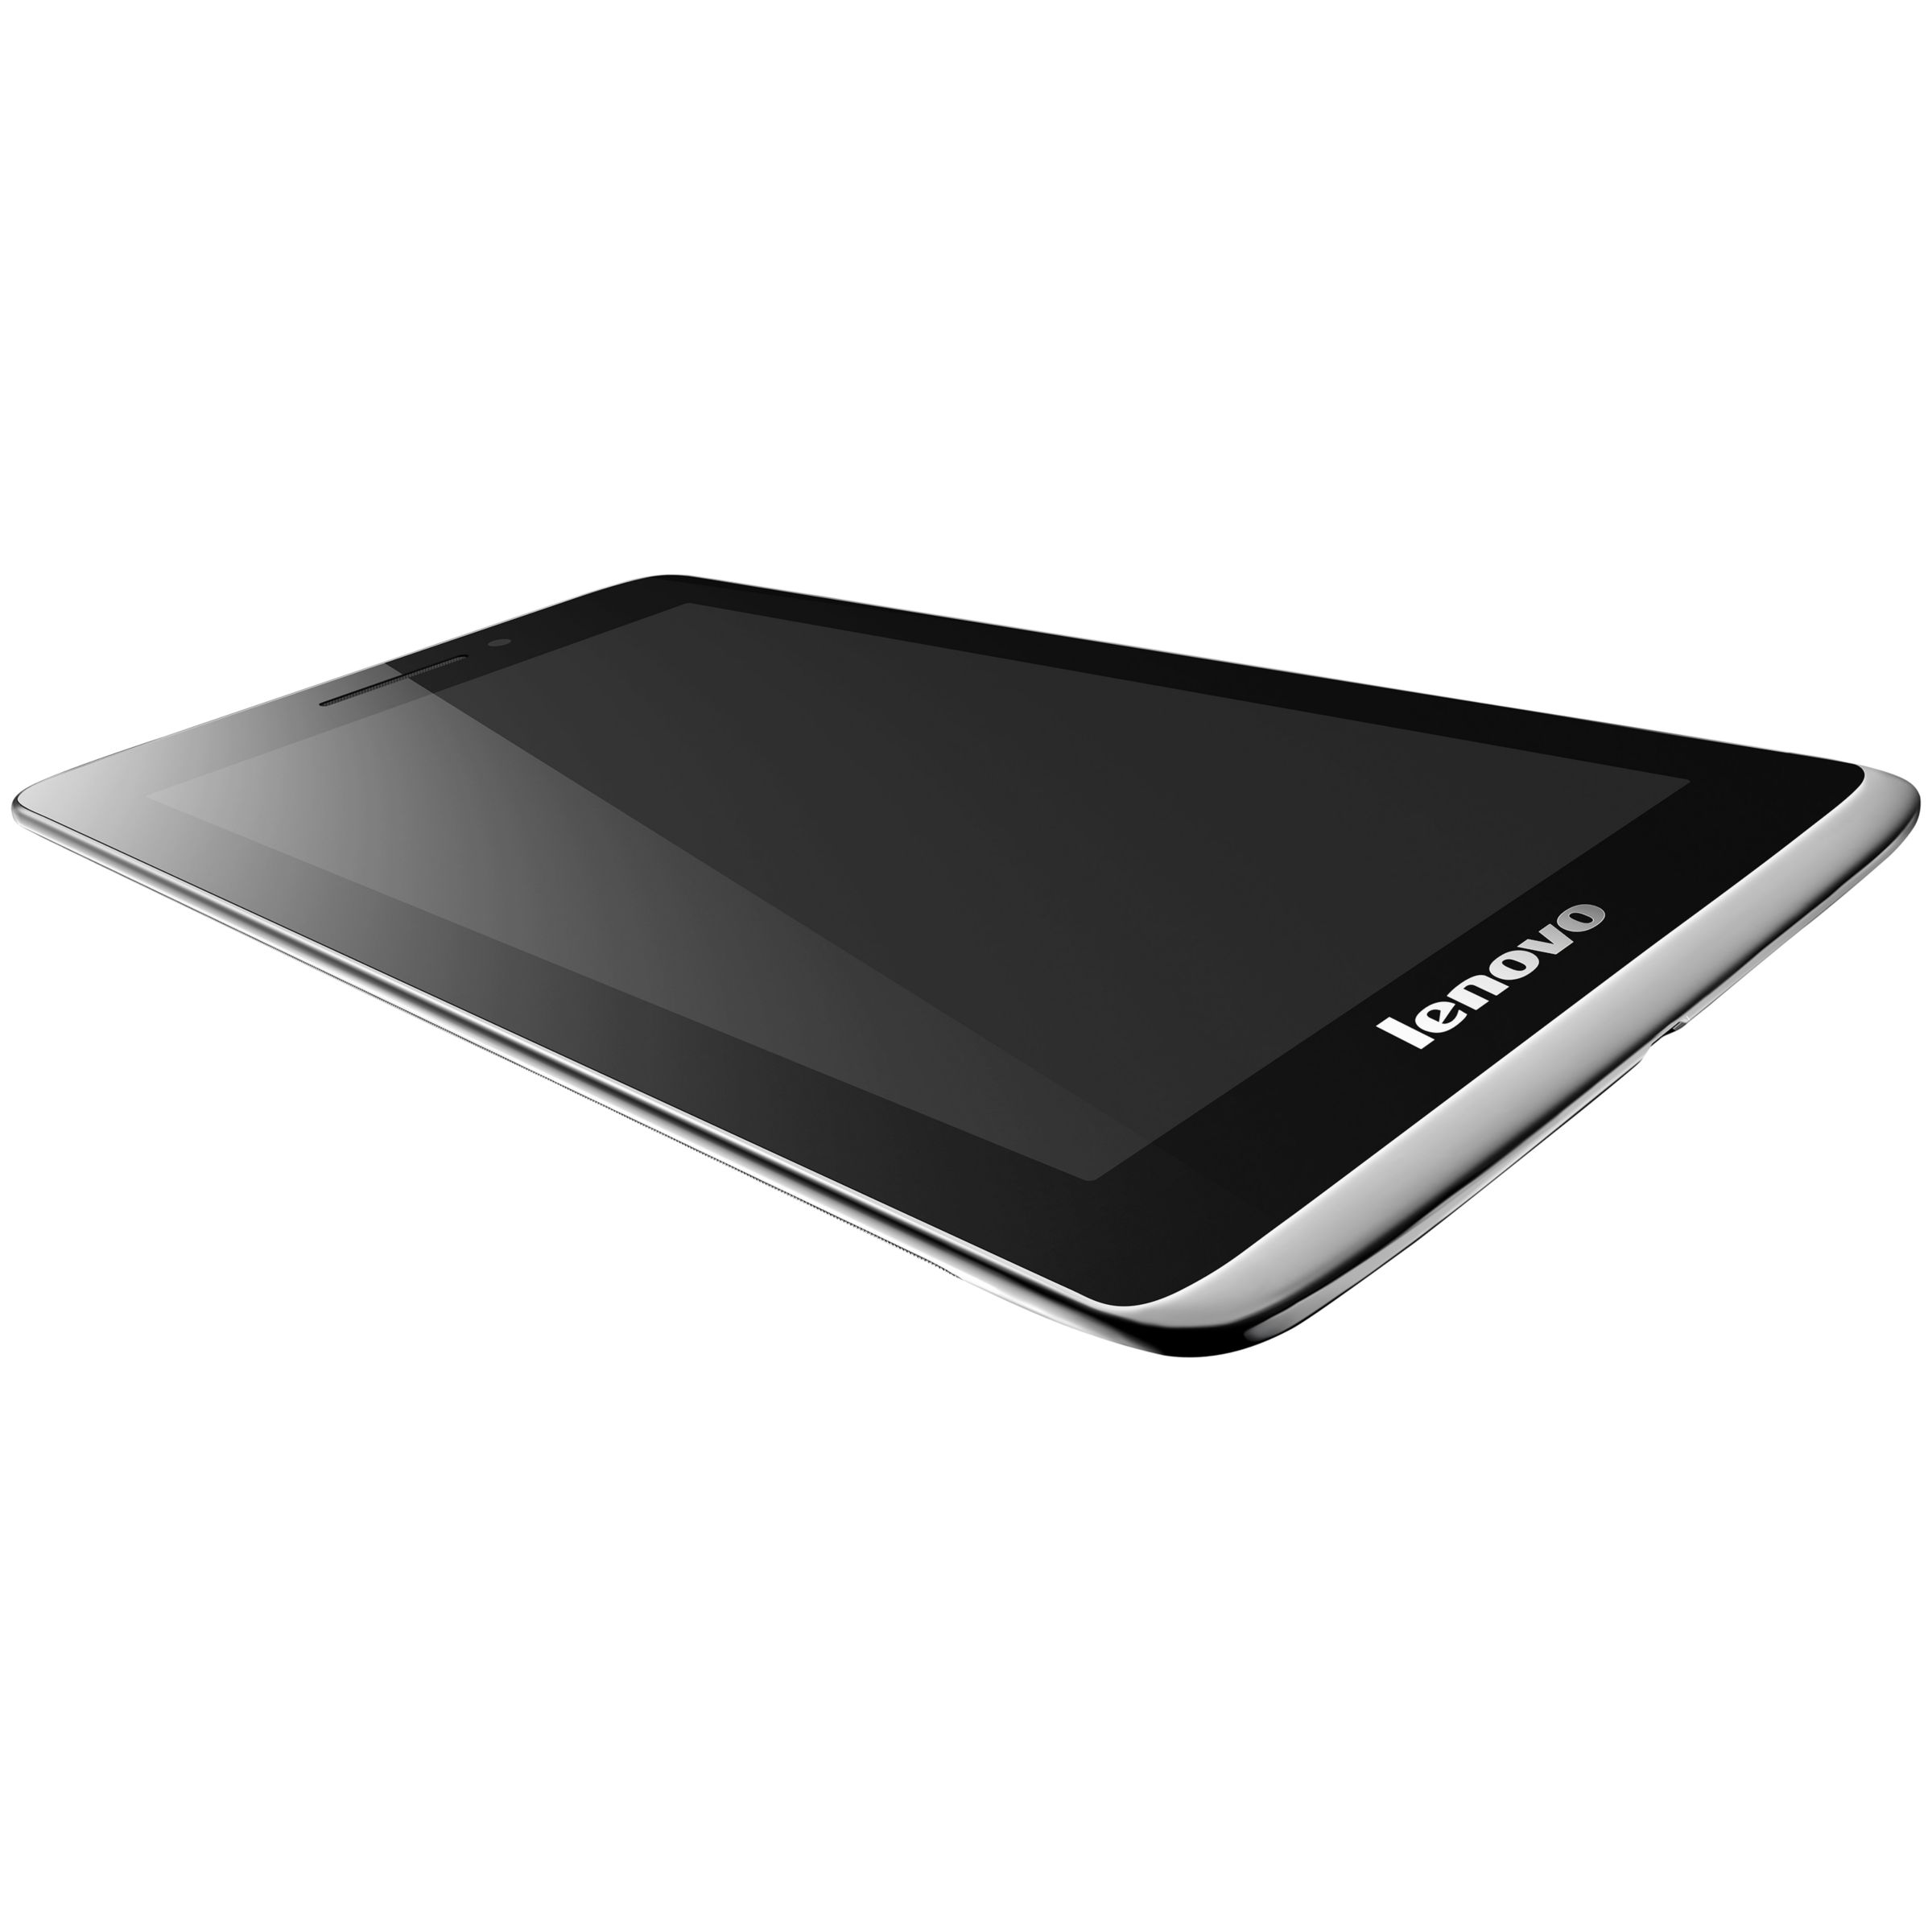 Lenovo IdeaTab S5000 Tablet, Quad-core Processor, Android, 7